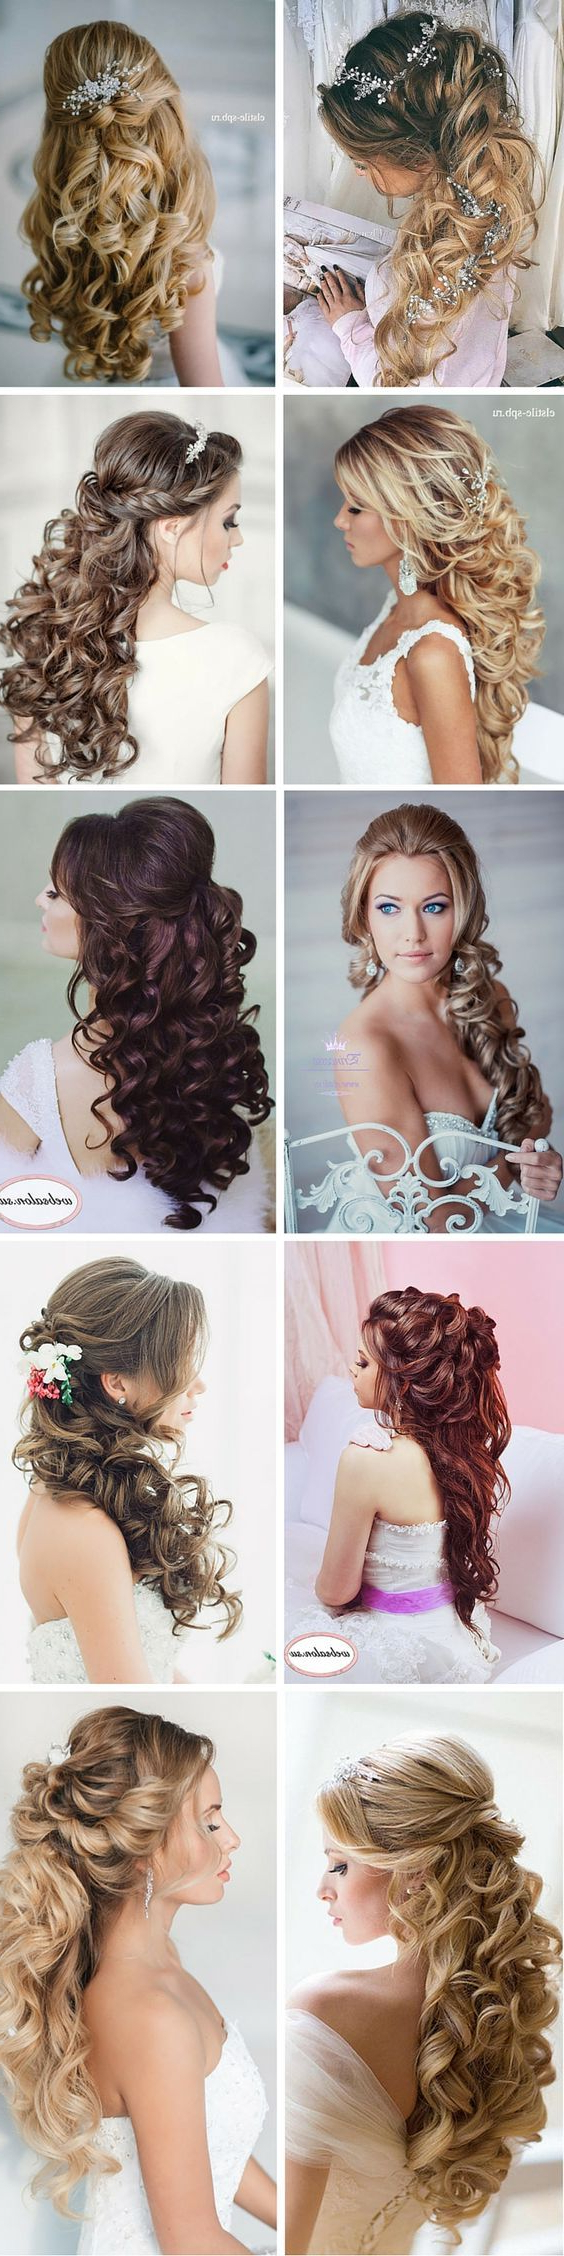 250 Bridal Wedding Hairstyles For Long Hair That Will Inspire Throughout Most Popular Large Curl Updos For Brides (Gallery 3 of 20)